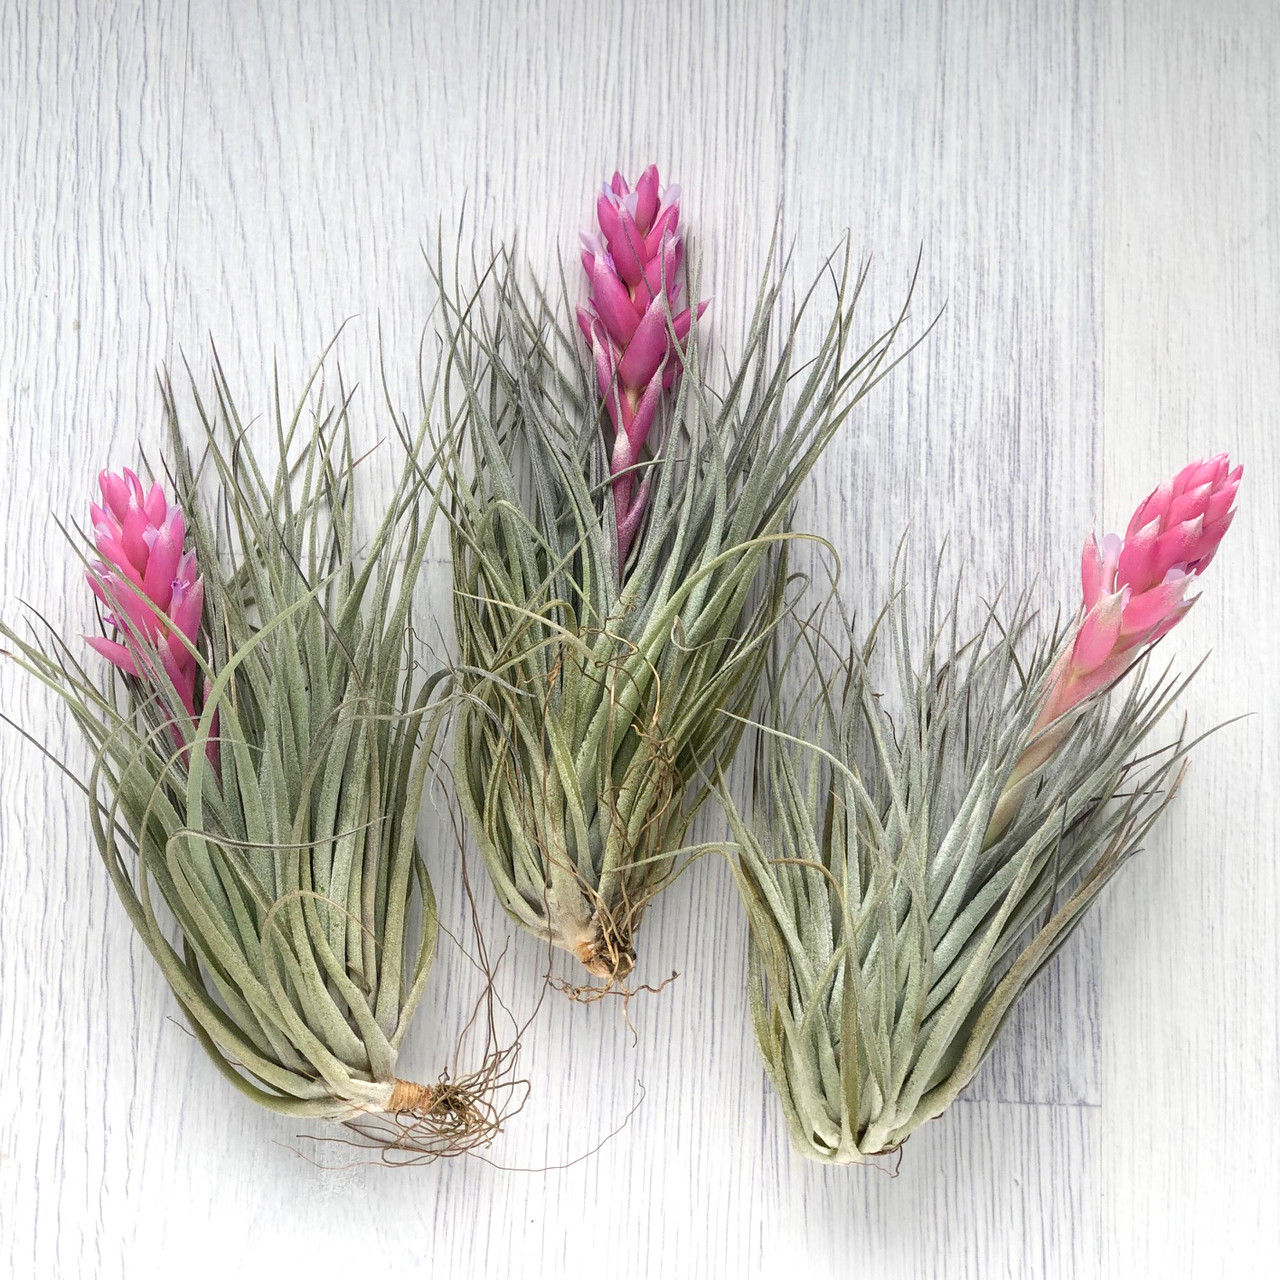 Тилландсия атмосферная Хьюстон Cotton Candy (Tillandsia Houston Cotton Candy)